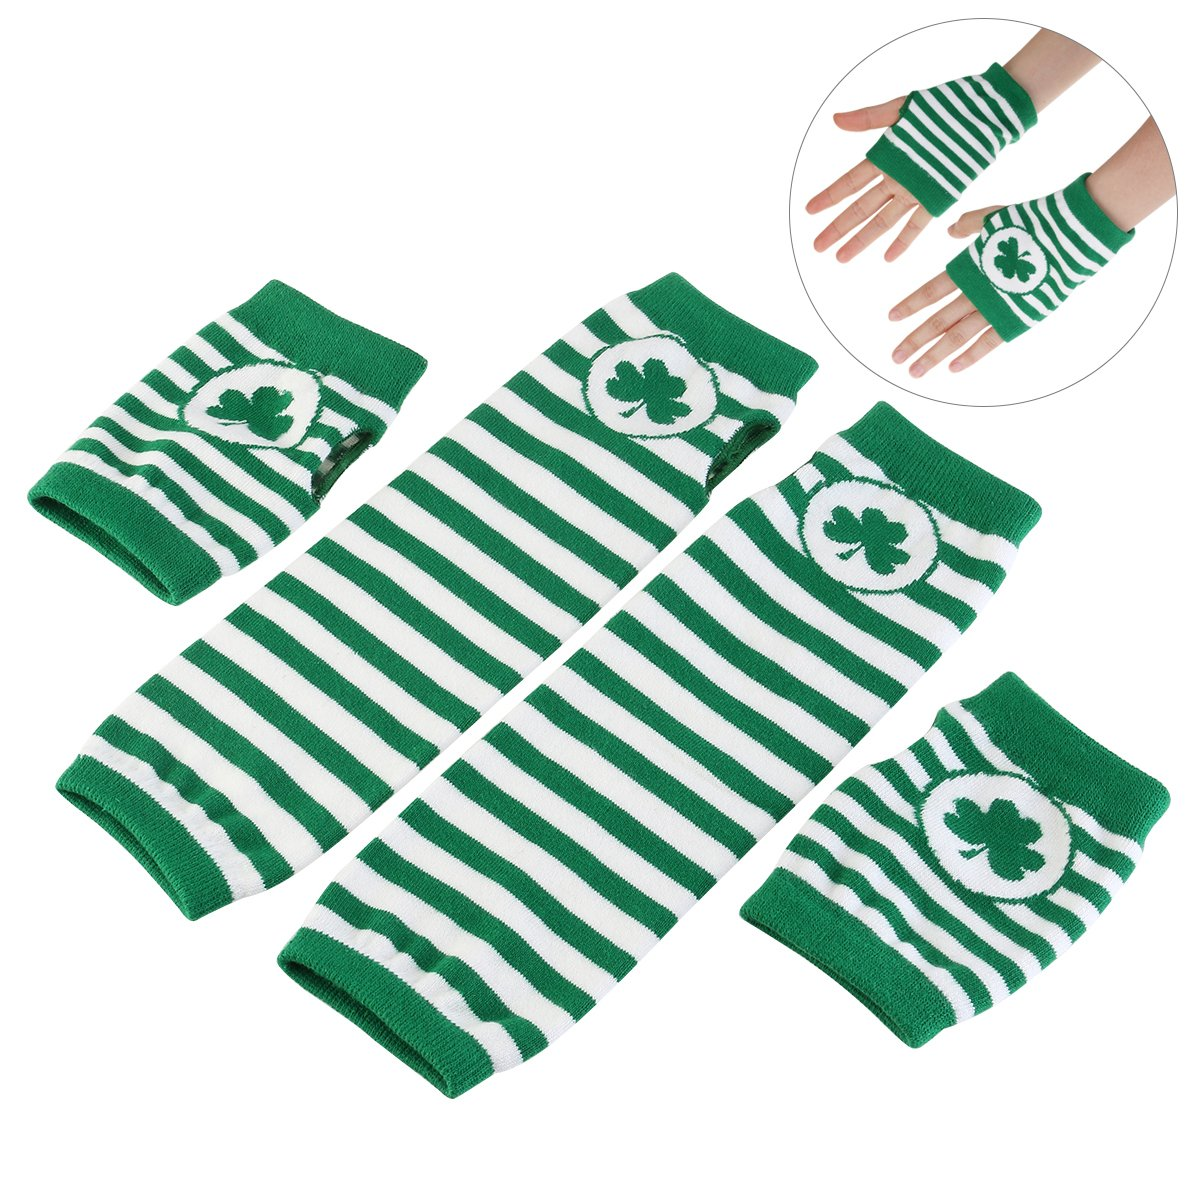 Unisex St. Patricks Day Shamrock Fingerless Gloves and Arm Warmers - 2 Glove Bulk Pack